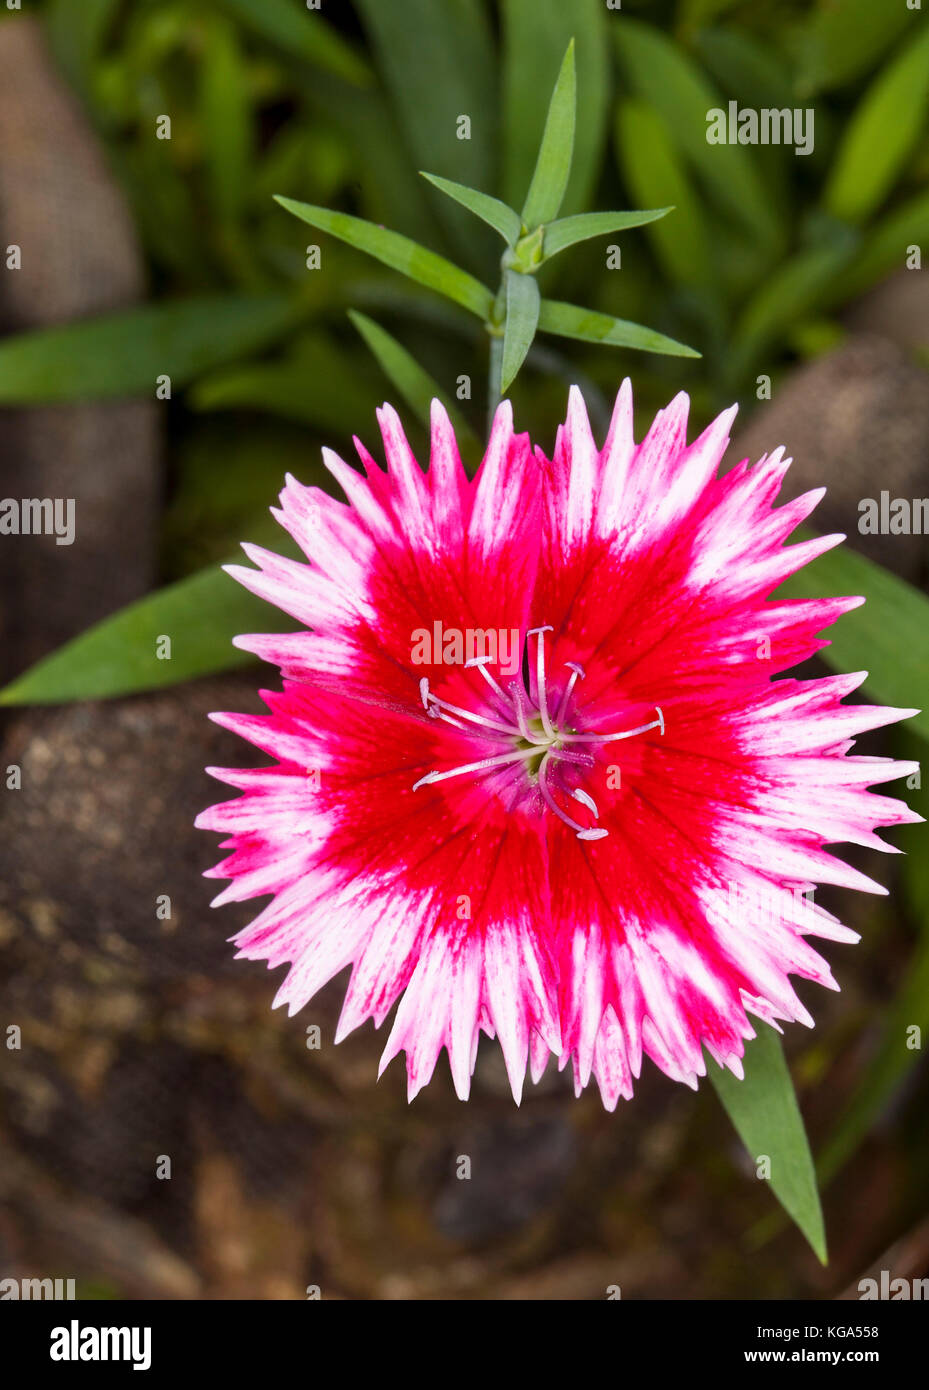 Single vivid red and white flower with frilly edged petals of Dianthus barbatus on background of green leaves - Stock Image